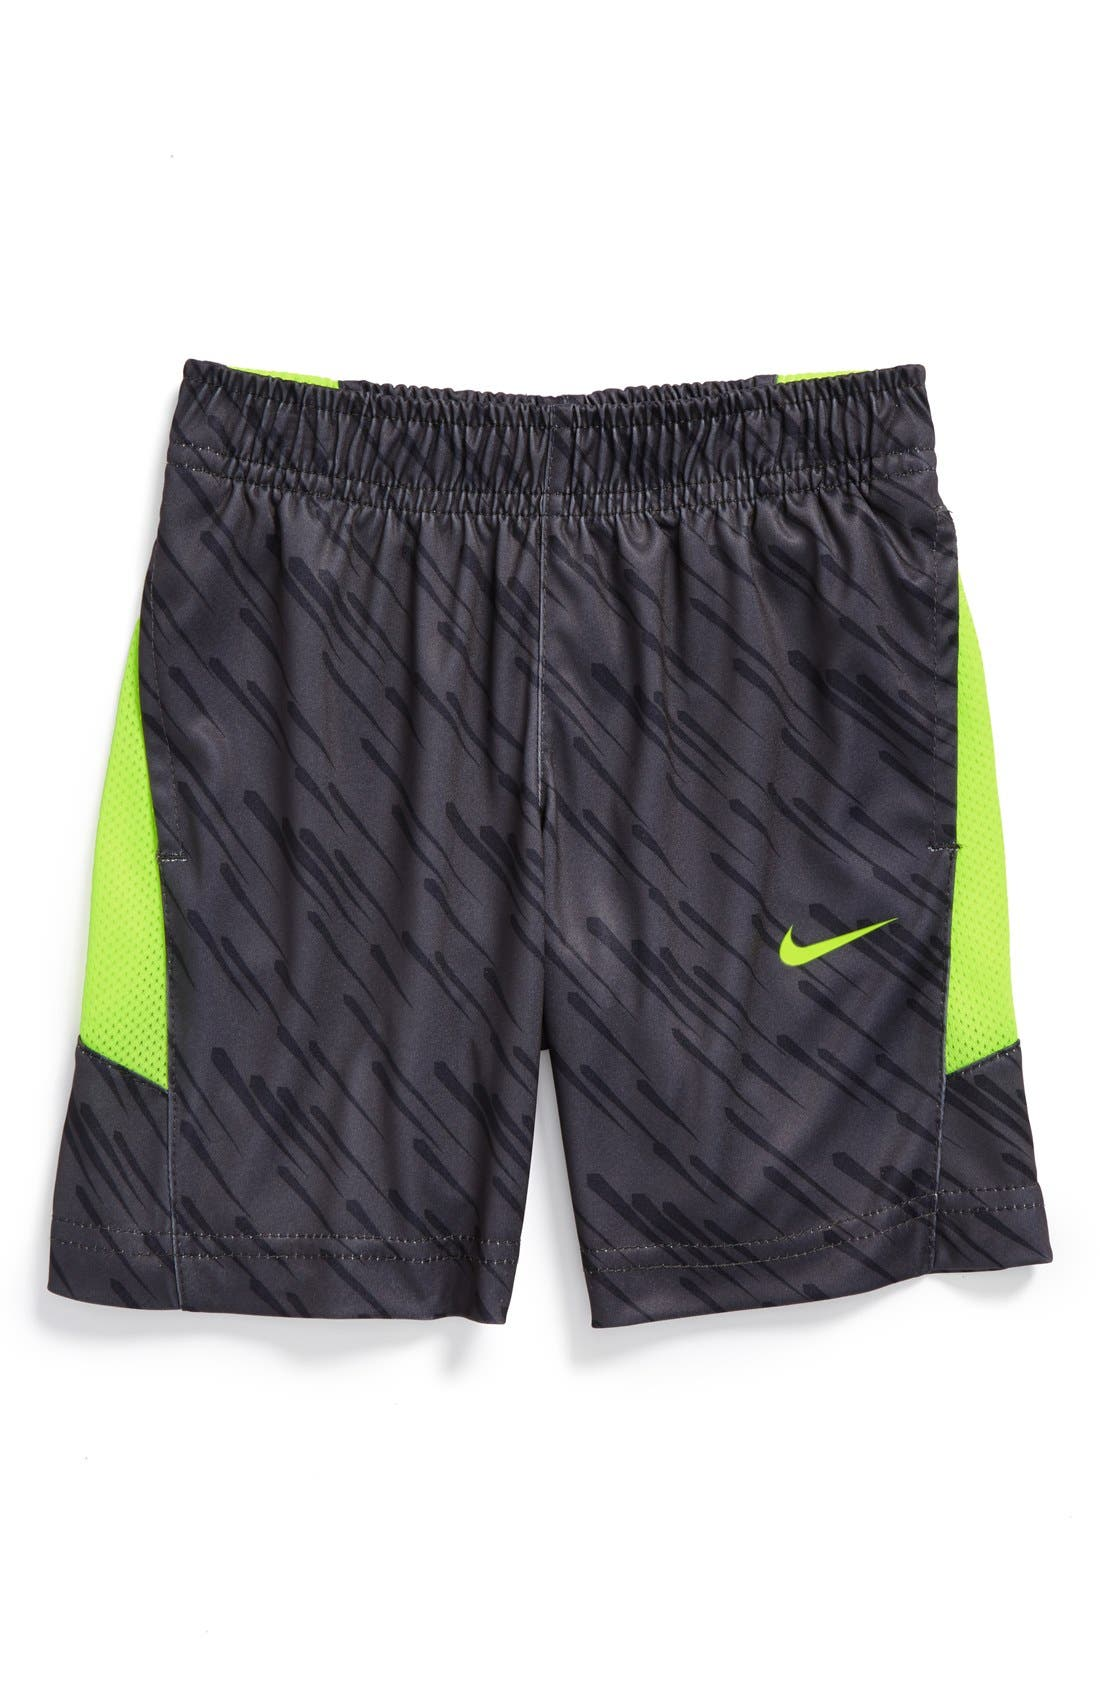 Main Image - Nike 'Speed GFX' Dri-FIT Shorts (Toddler Boys)